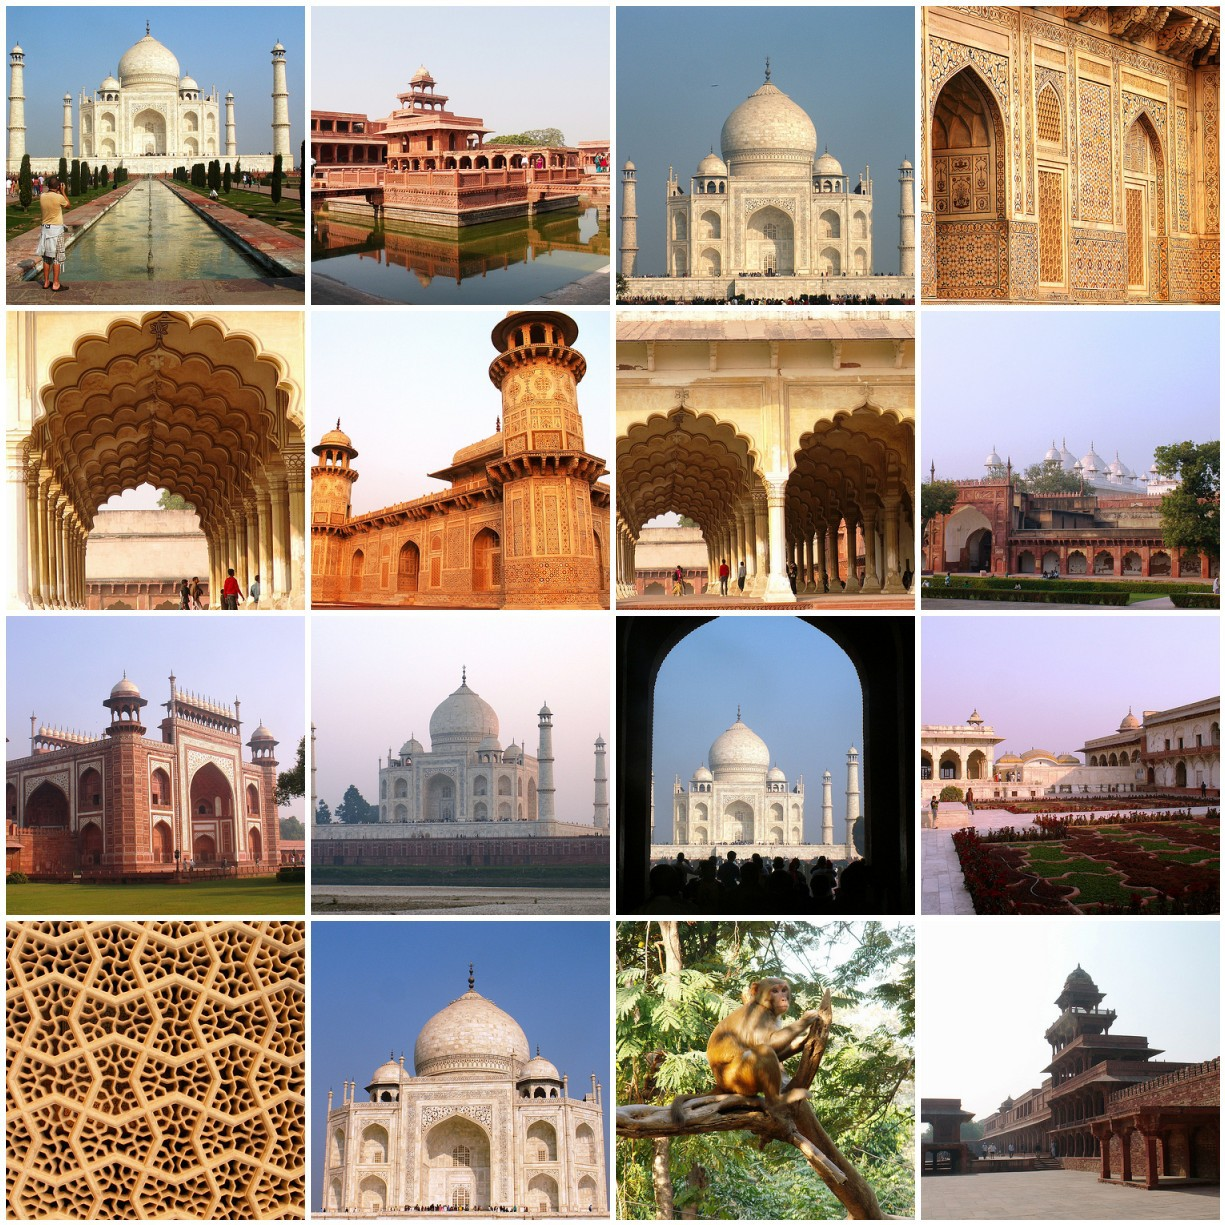 Wonders of Agra © Pedro/Flickr